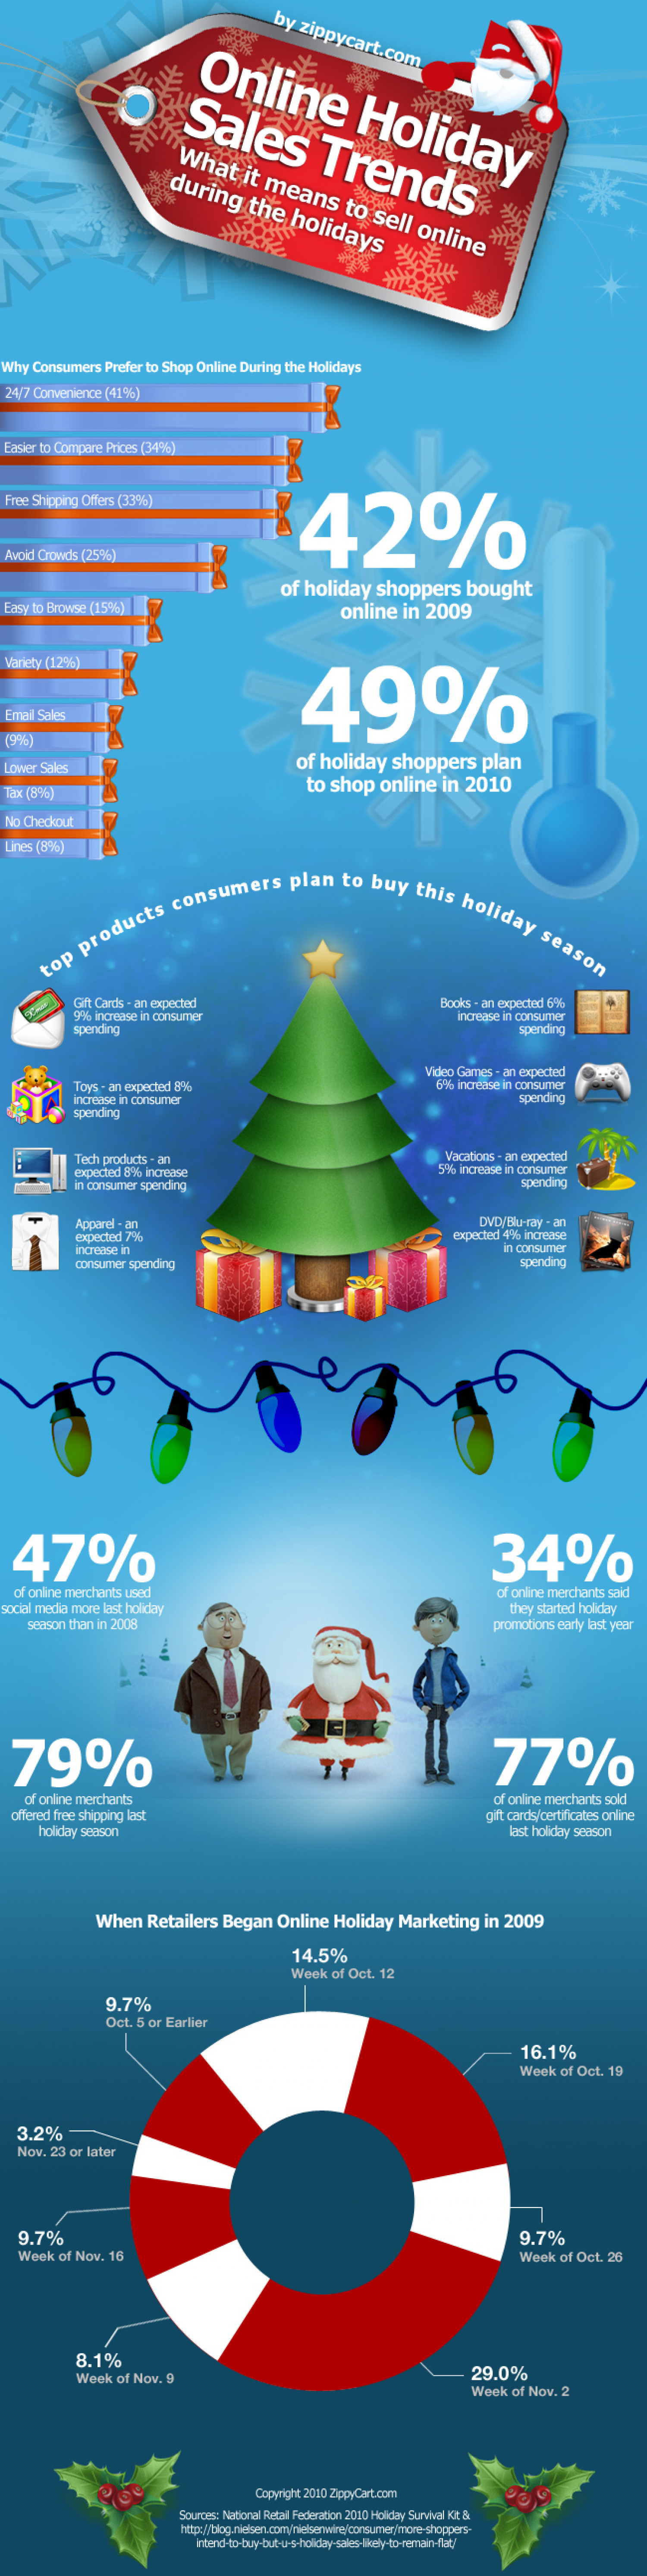 Online Holiday Sales Trends Infographic